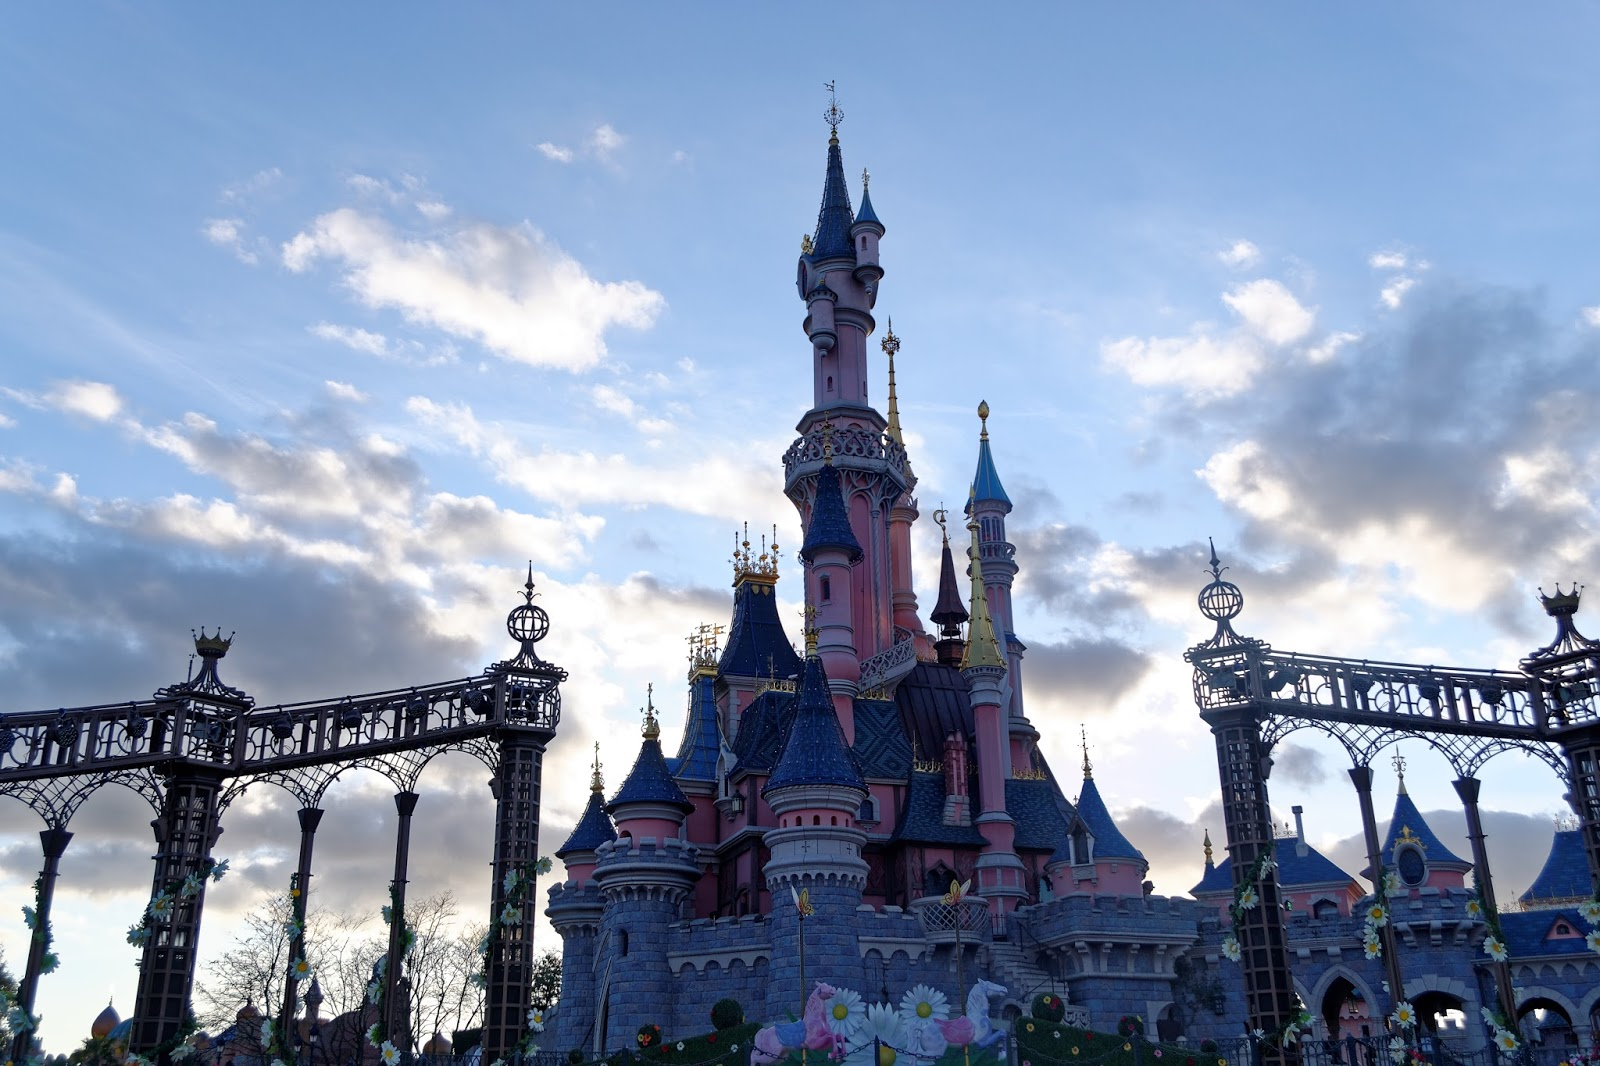 https://www.notebook.ldmailys.com/2017/09/disneyland-paris.html